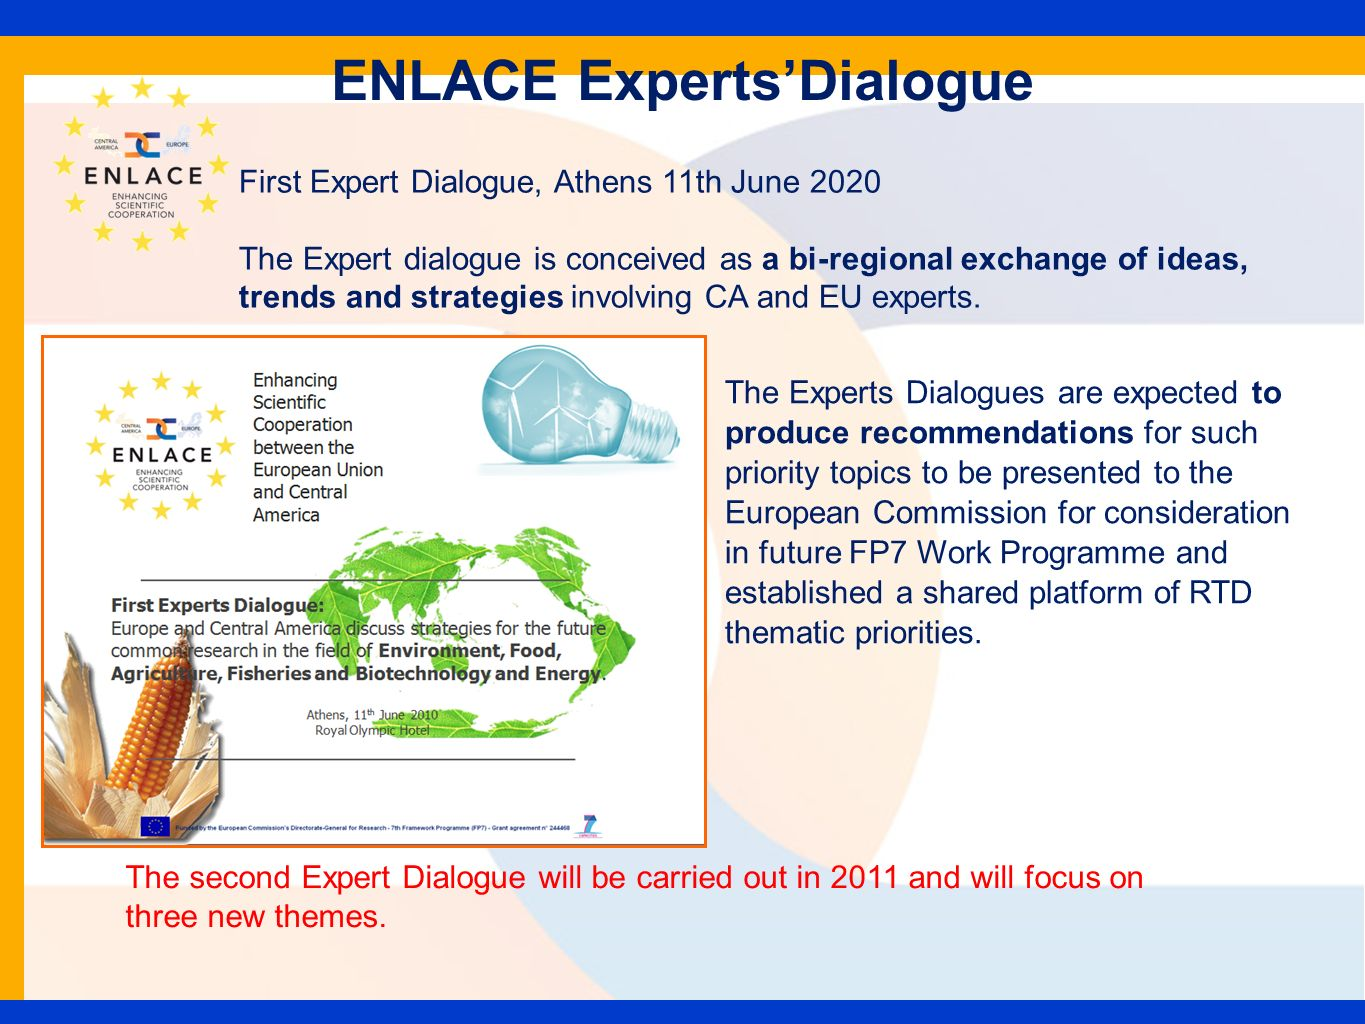 ENLACE ExpertsDialogue The Experts Dialogues are expected to produce recommendations for such priority topics to be presented to the European Commissi